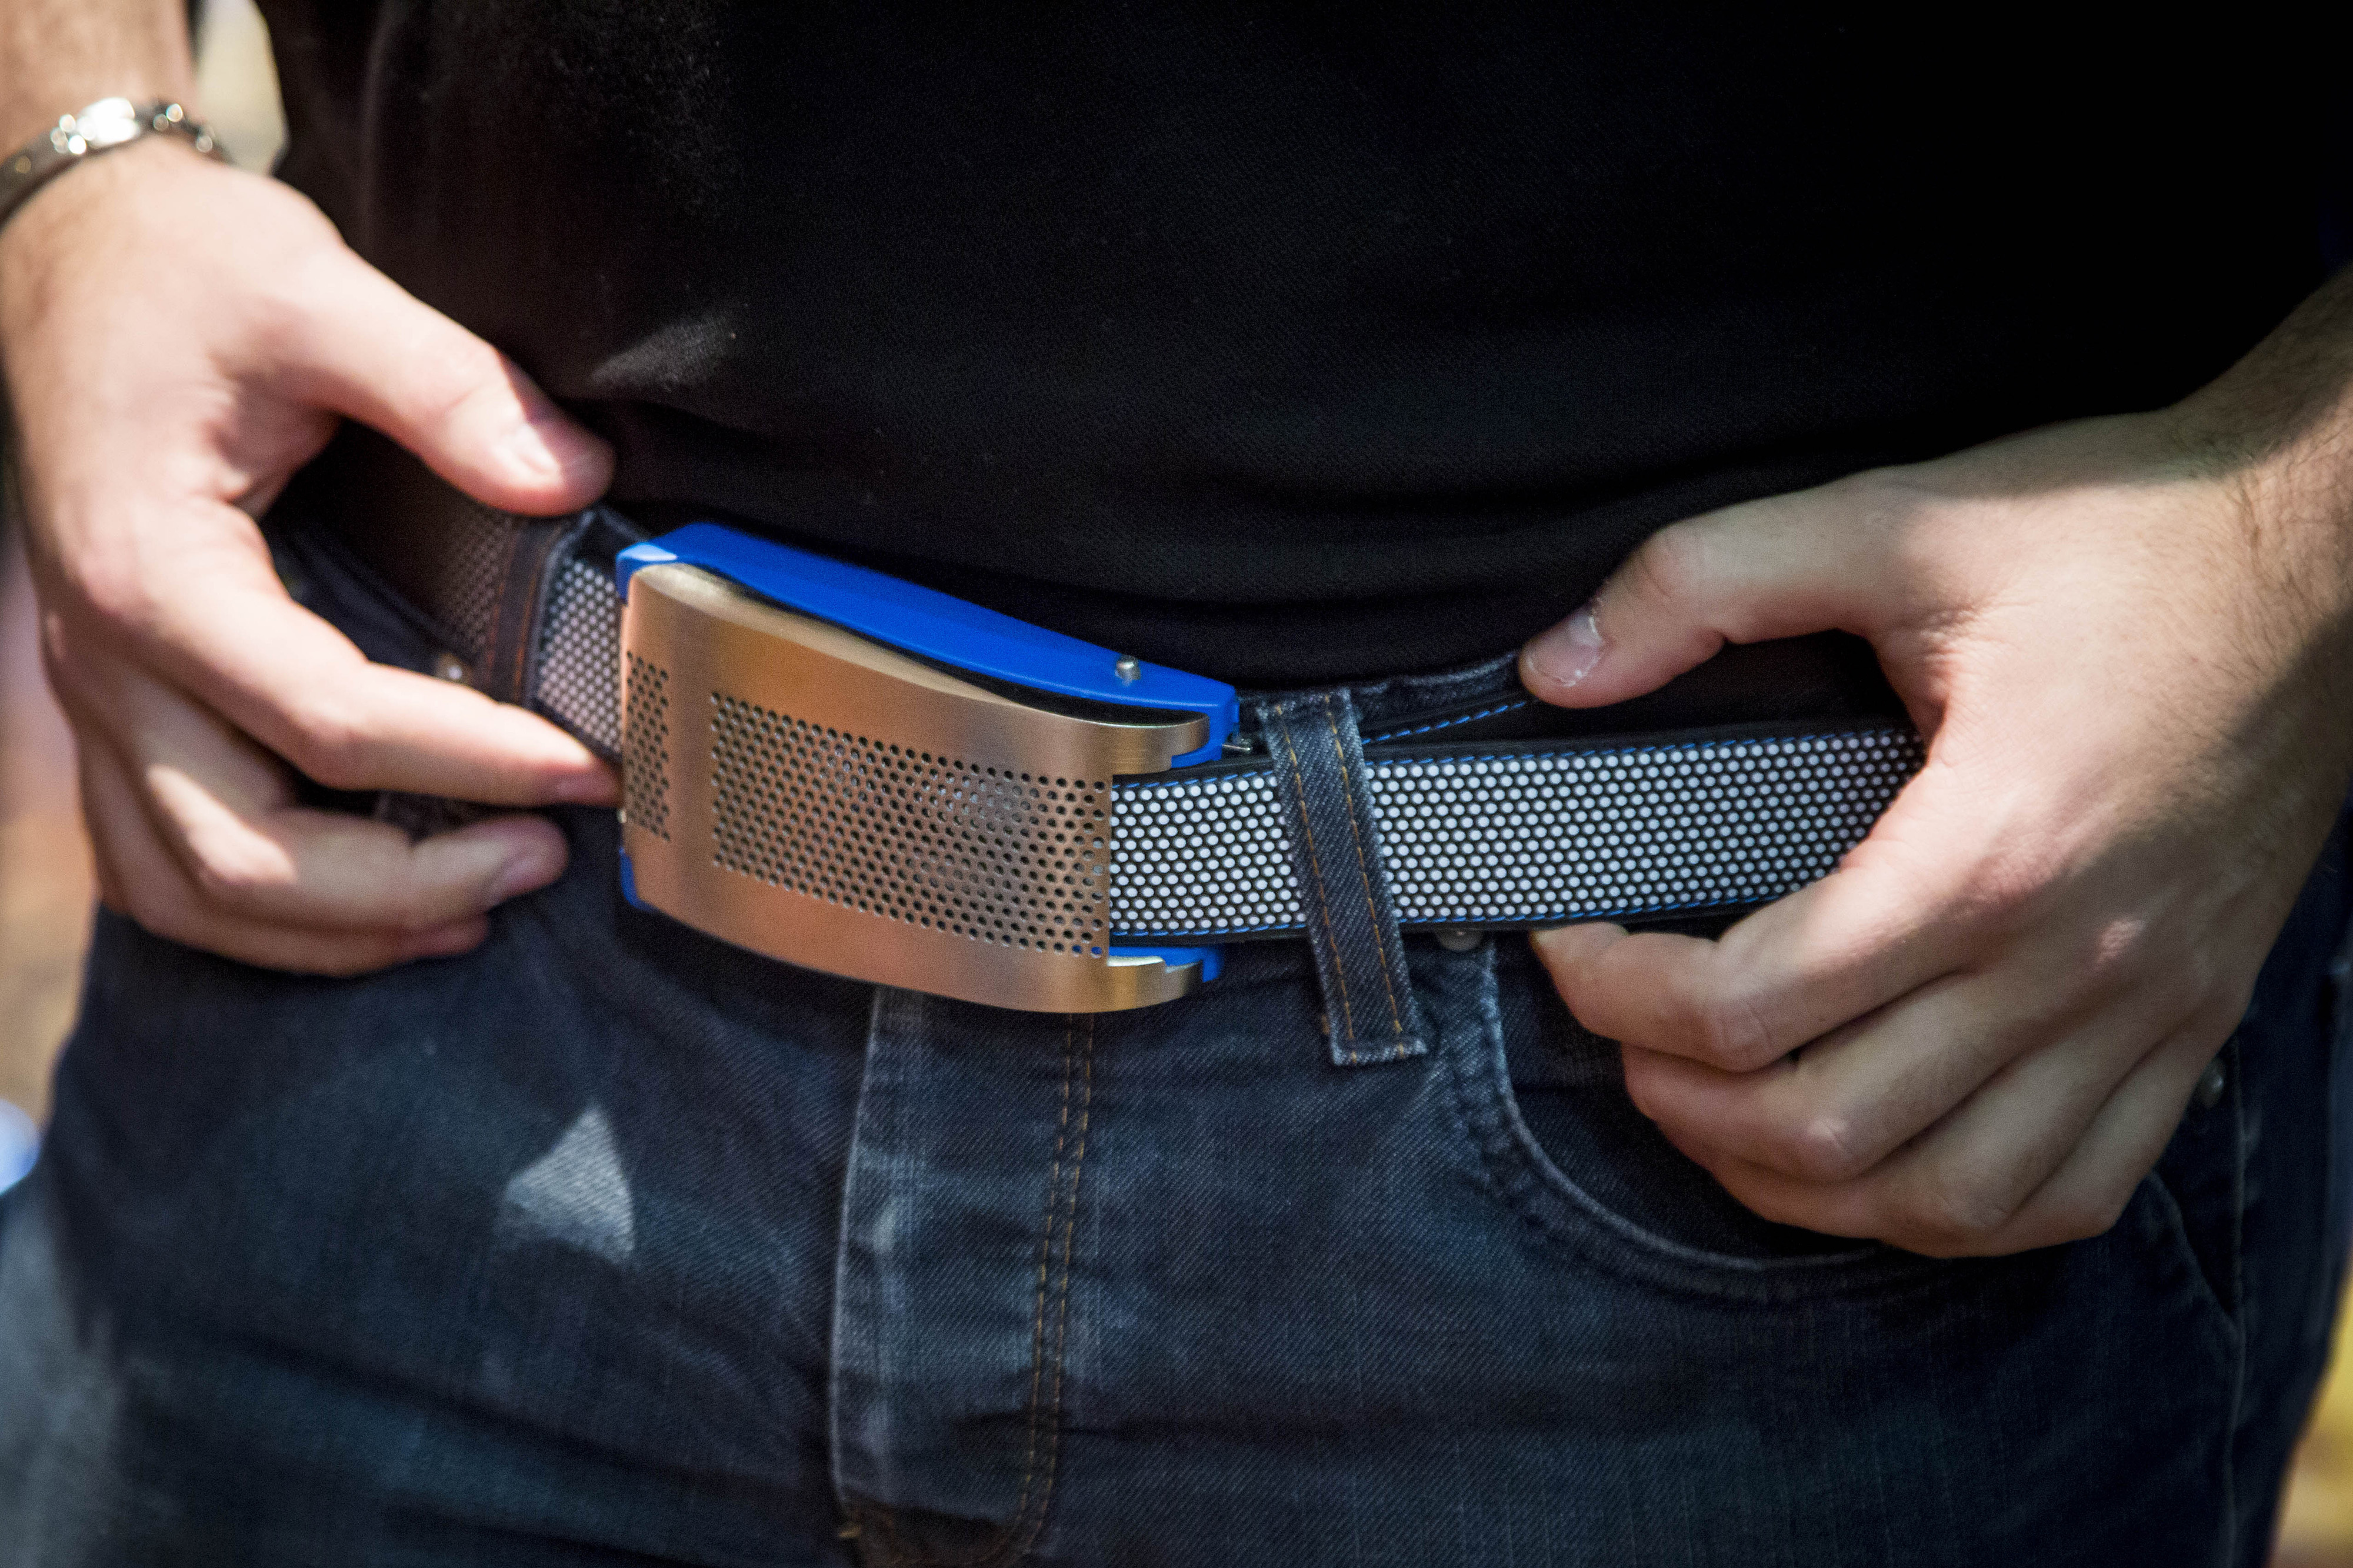 The Emiota smart belt is demonstrated at the CES Unveiled press event ahead of the 2015 Consumer Electronics Show in Las Vegas, Nevada, U.S., on Sunday, Jan. 4, 2015.